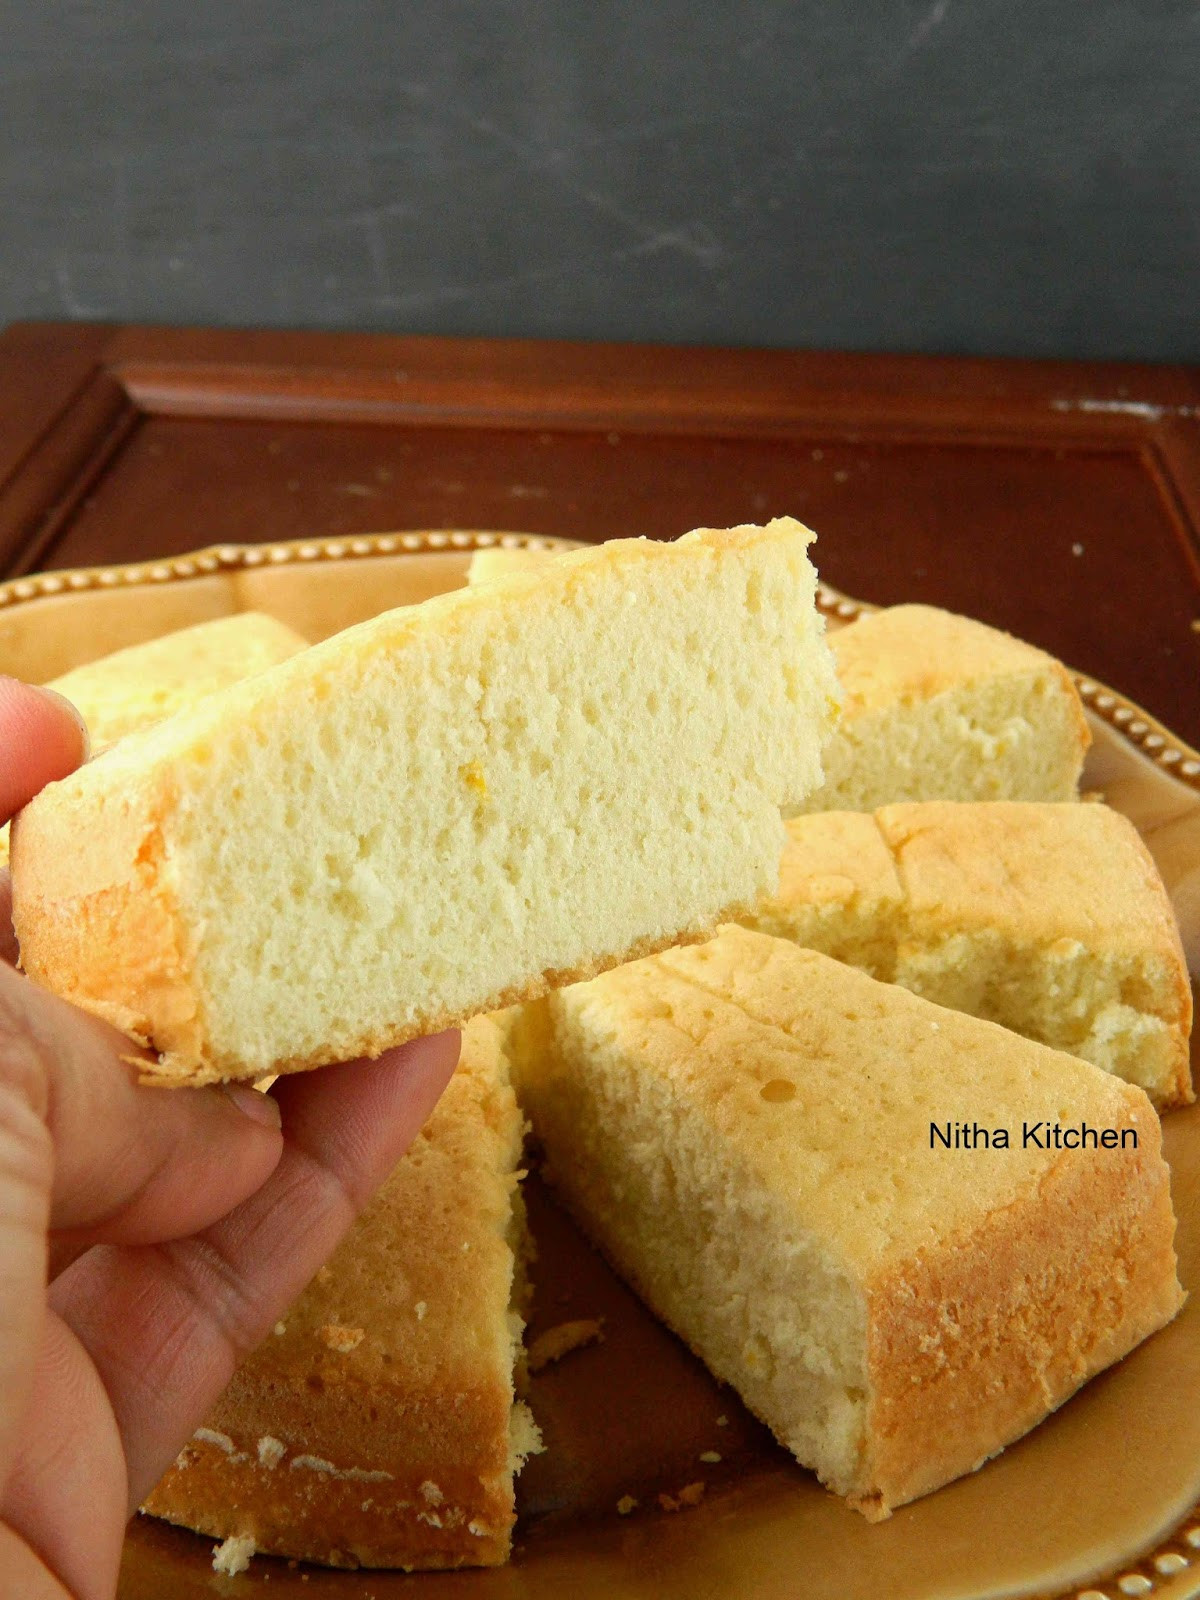 Sponge Cake Recipe From Scratch  No Butter and No Oil Vanilla Sponge Cake From Scratch